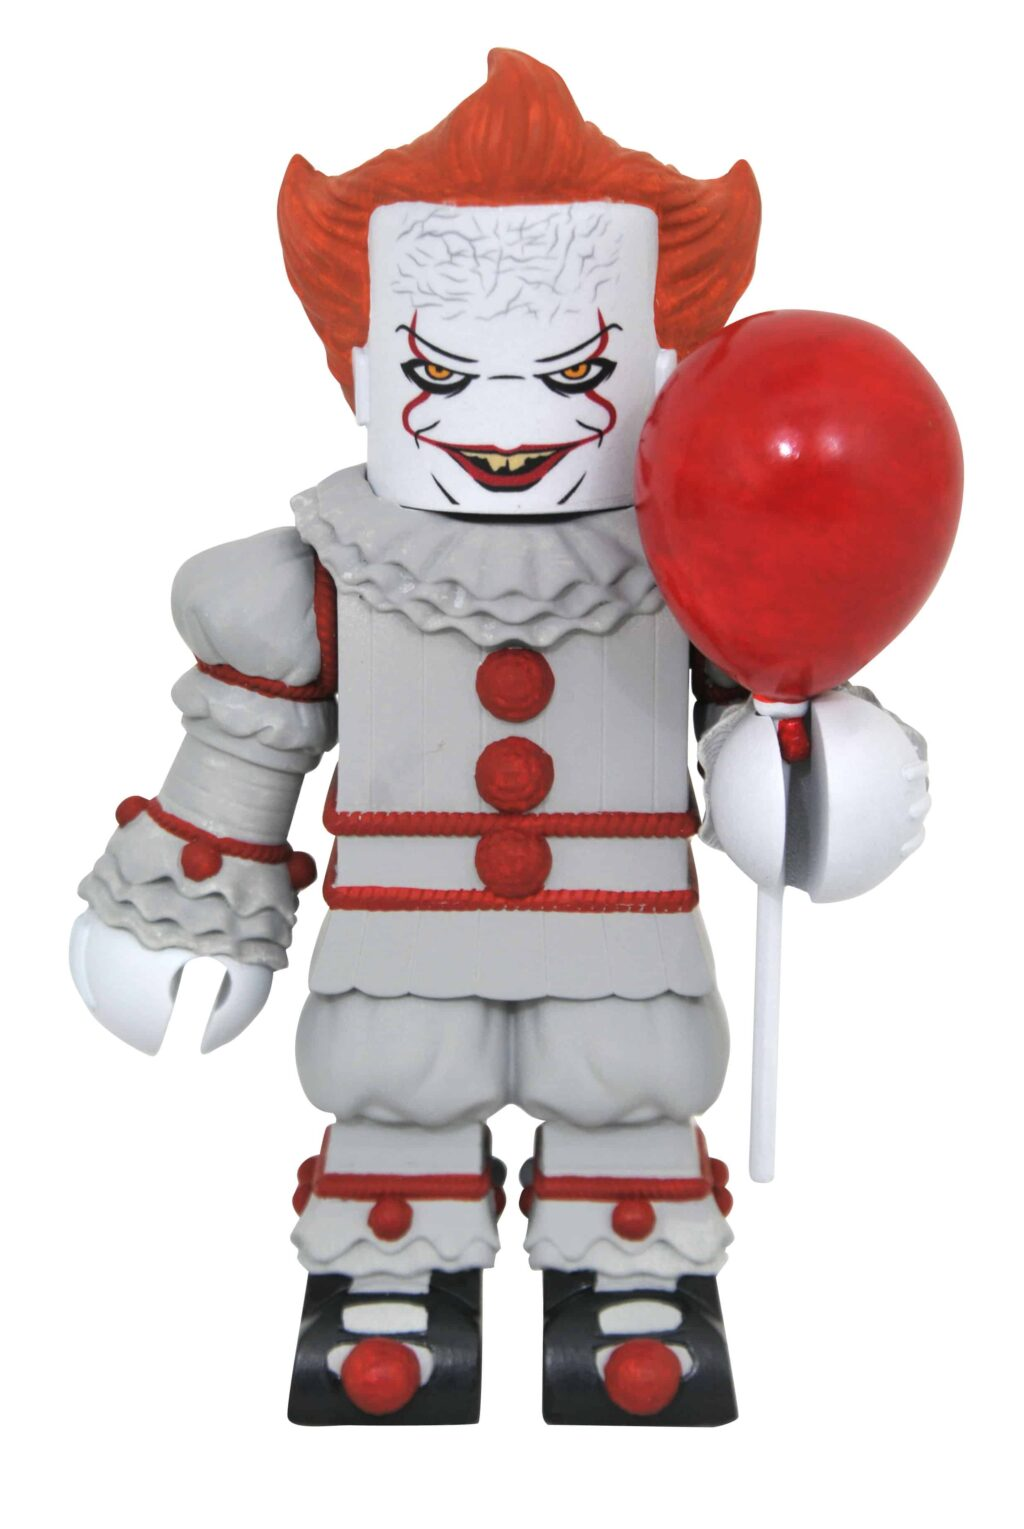 ITVinimate 1024x1529 - Diamond Select Toys' Pennywise Comes With His Own Red Balloon